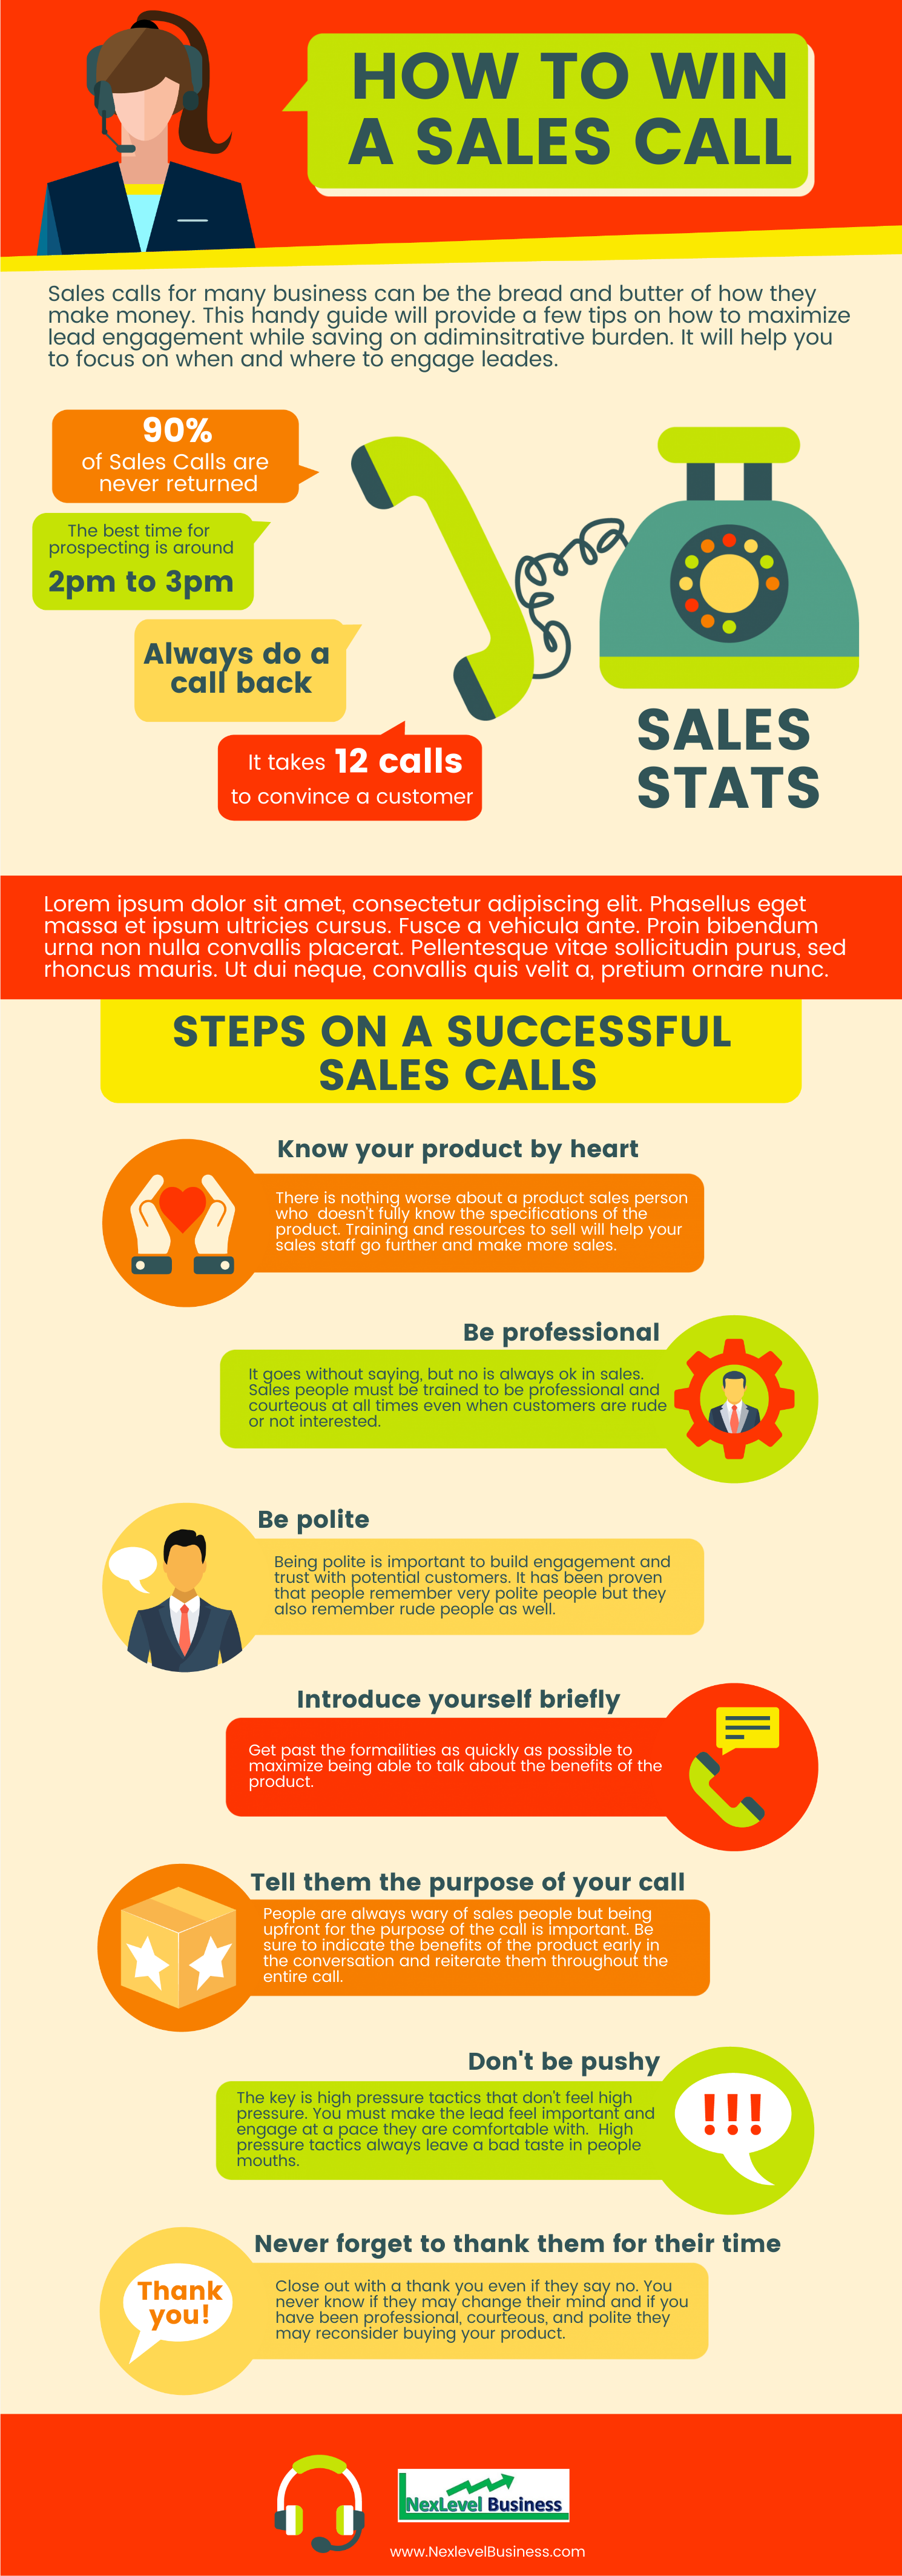 Infographic: How to Make a Sales Call 101